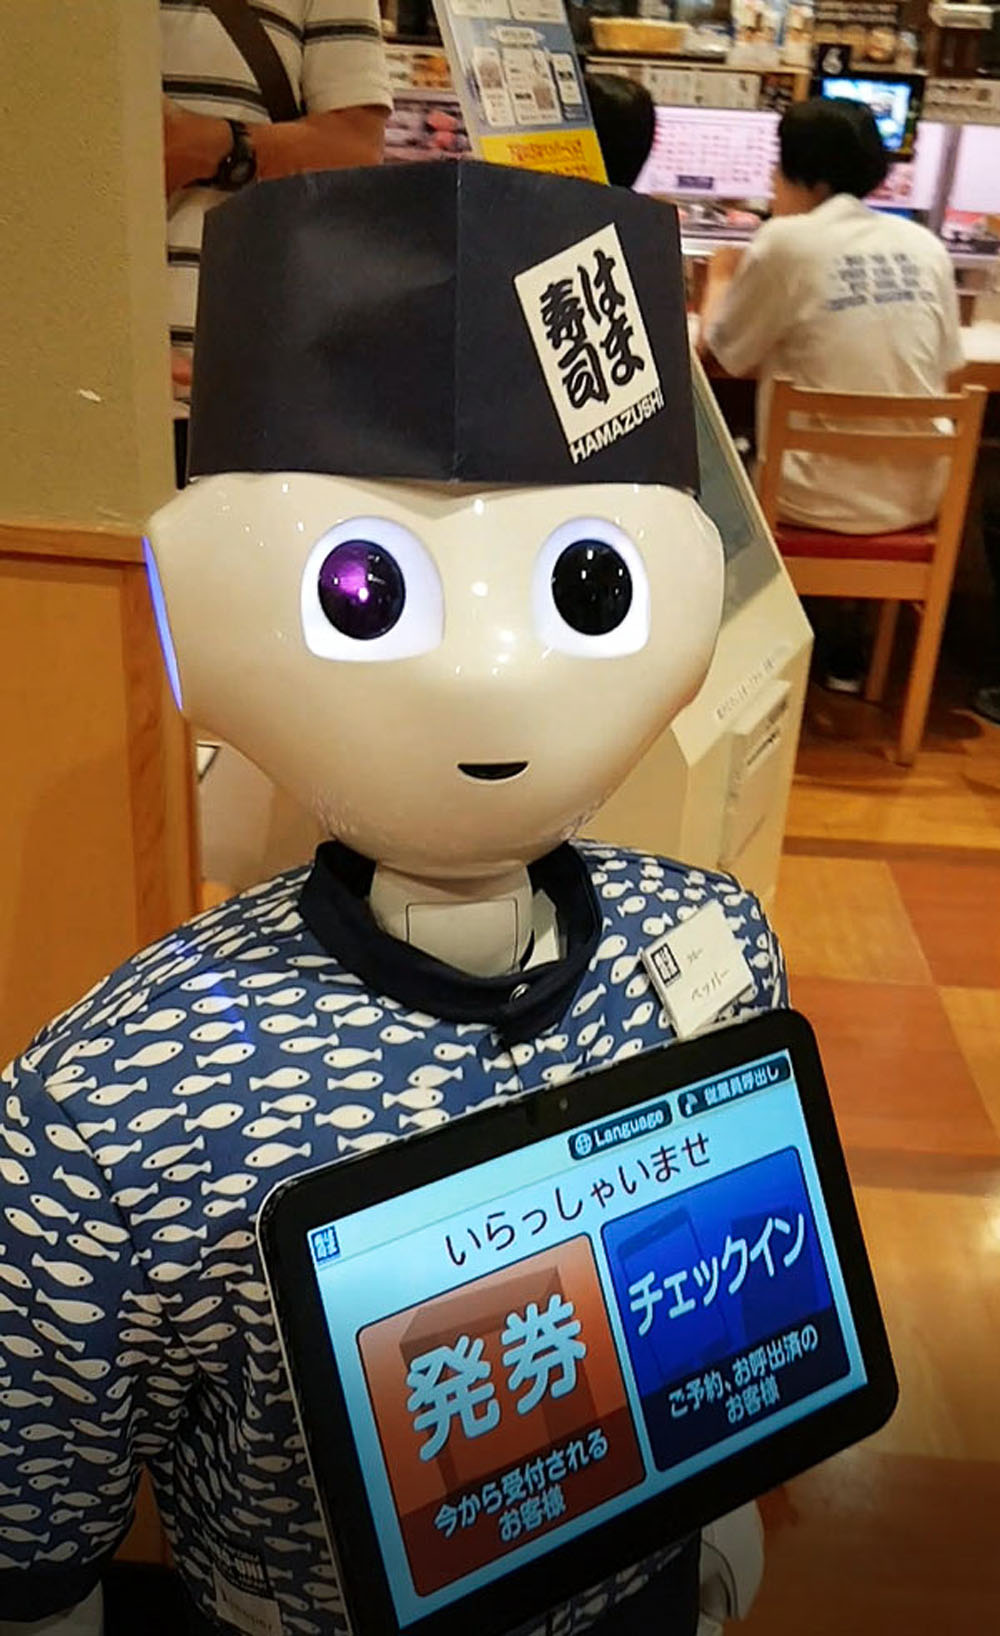 Hamazushi Robot in Japan